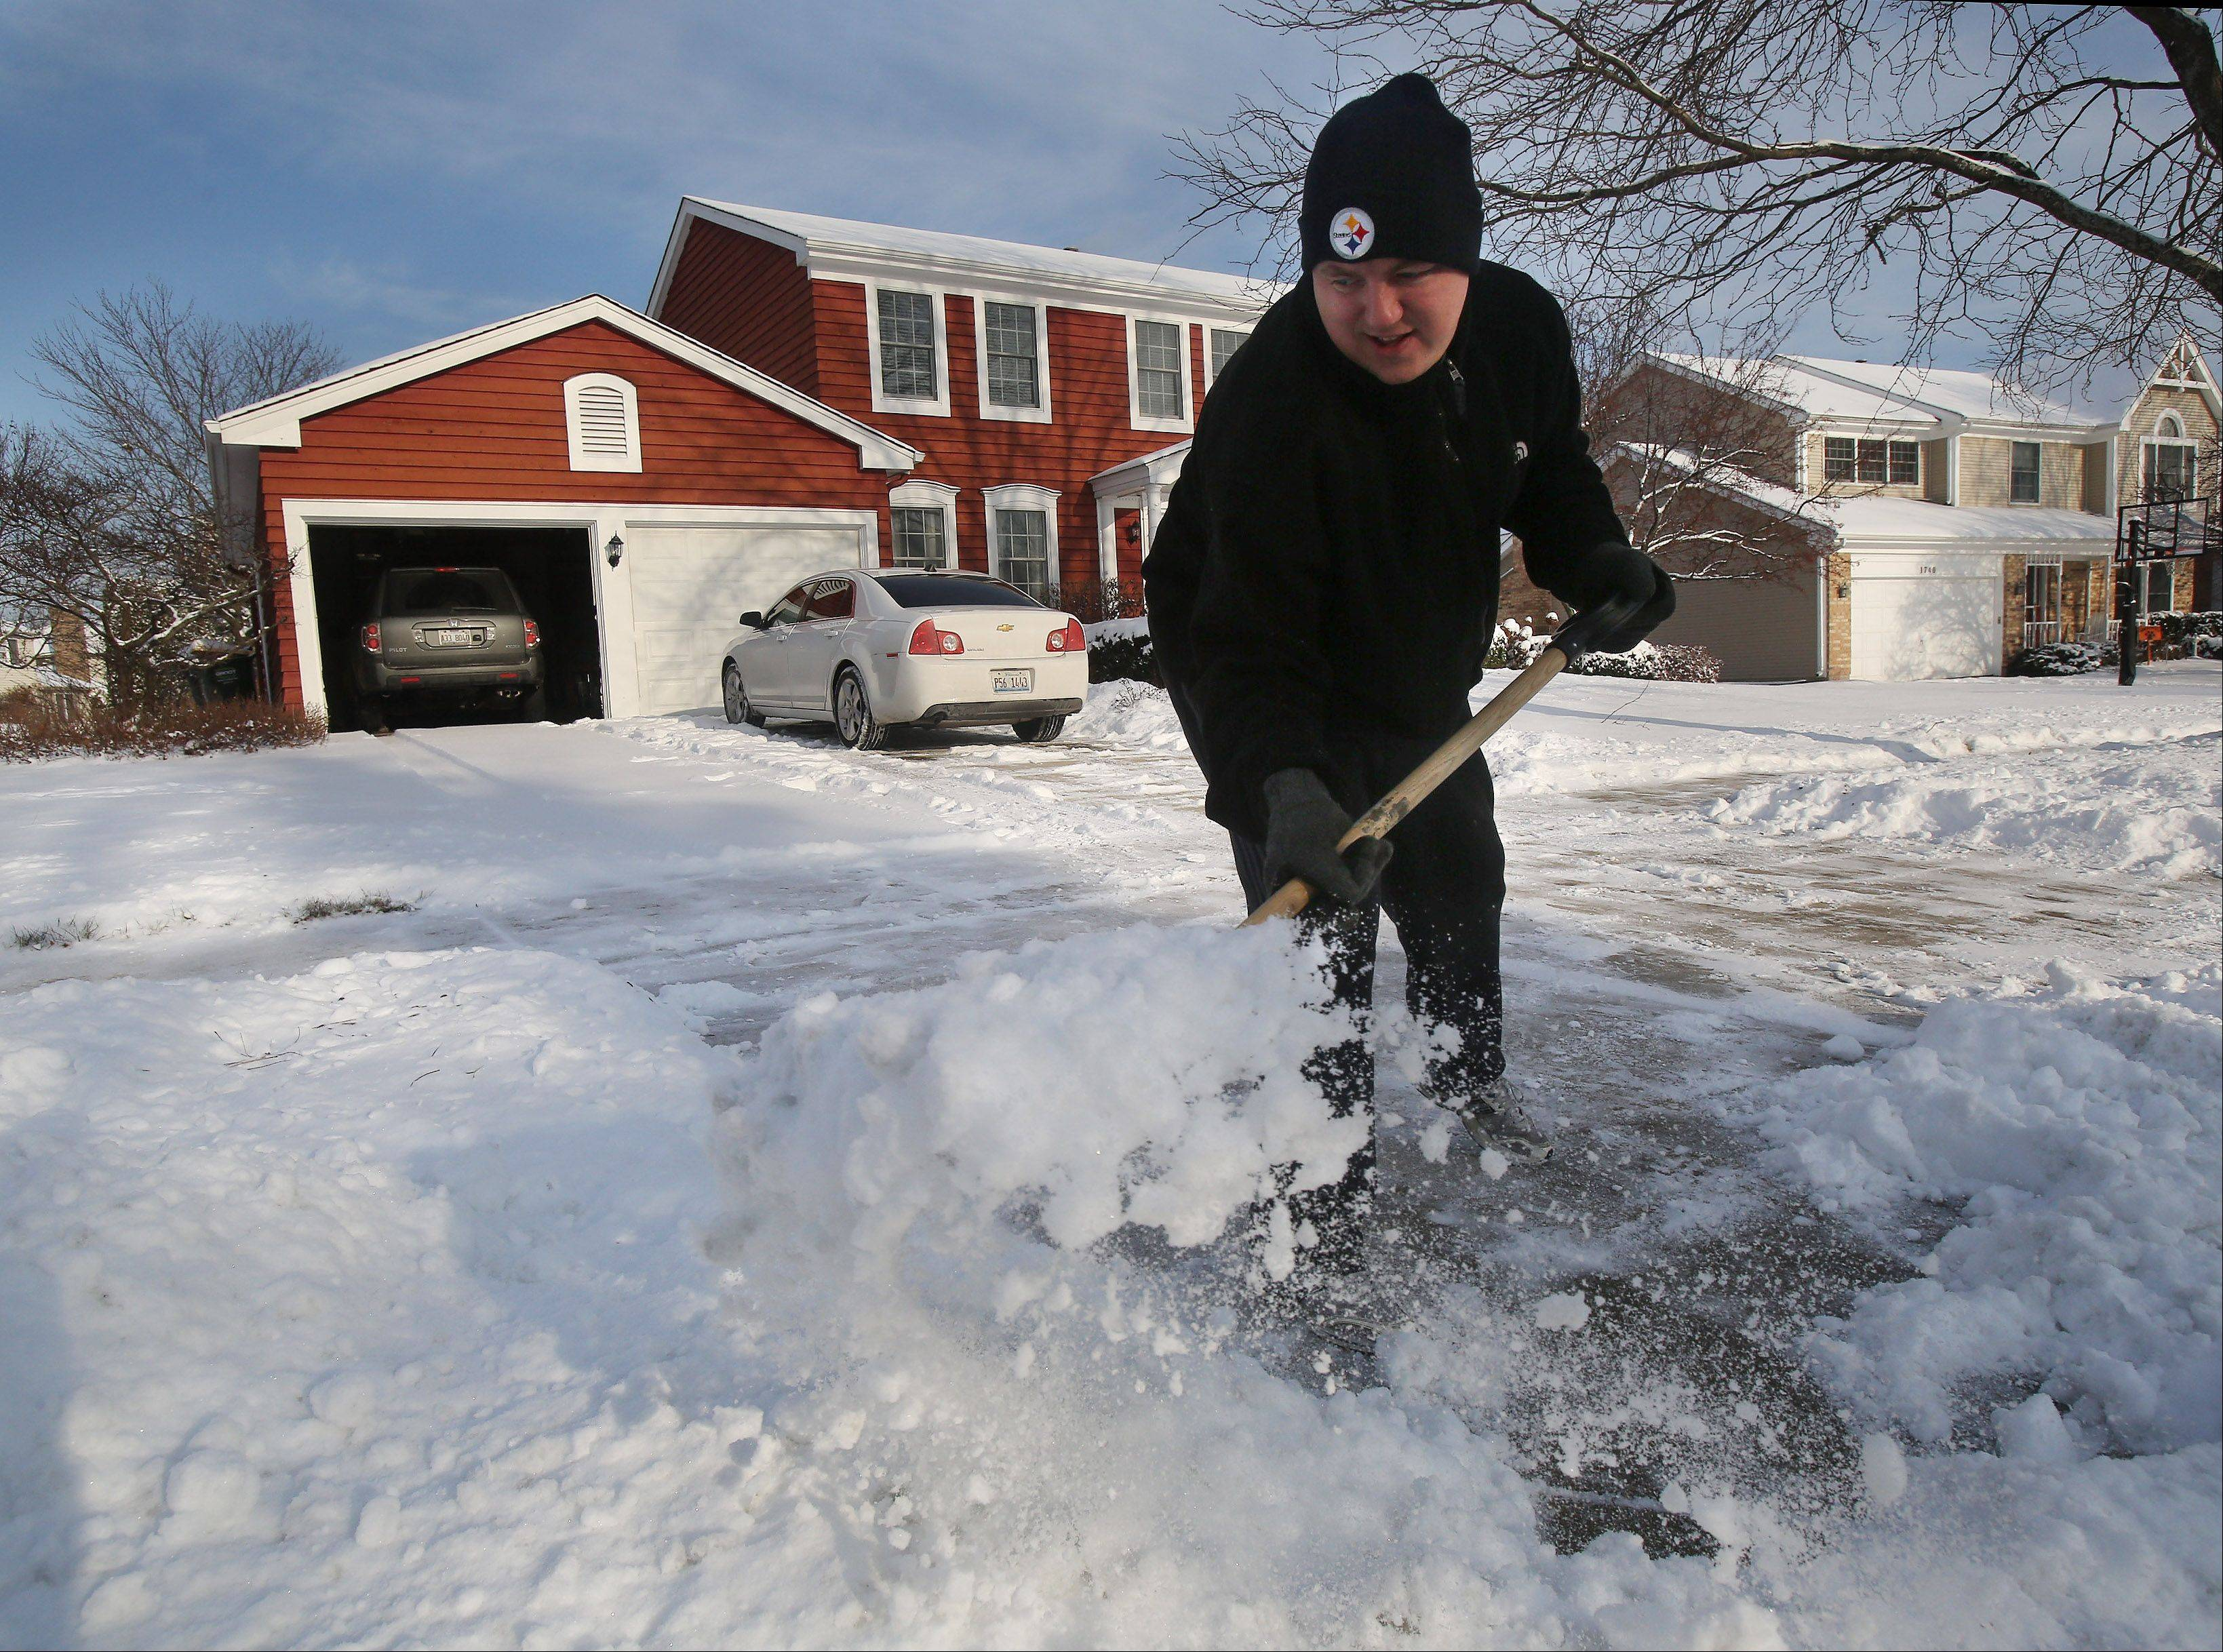 Libertyville resident Rocky Hakanen shovels snow off his driveway Monday morning after the first significant snowfall of the year in Lake County.